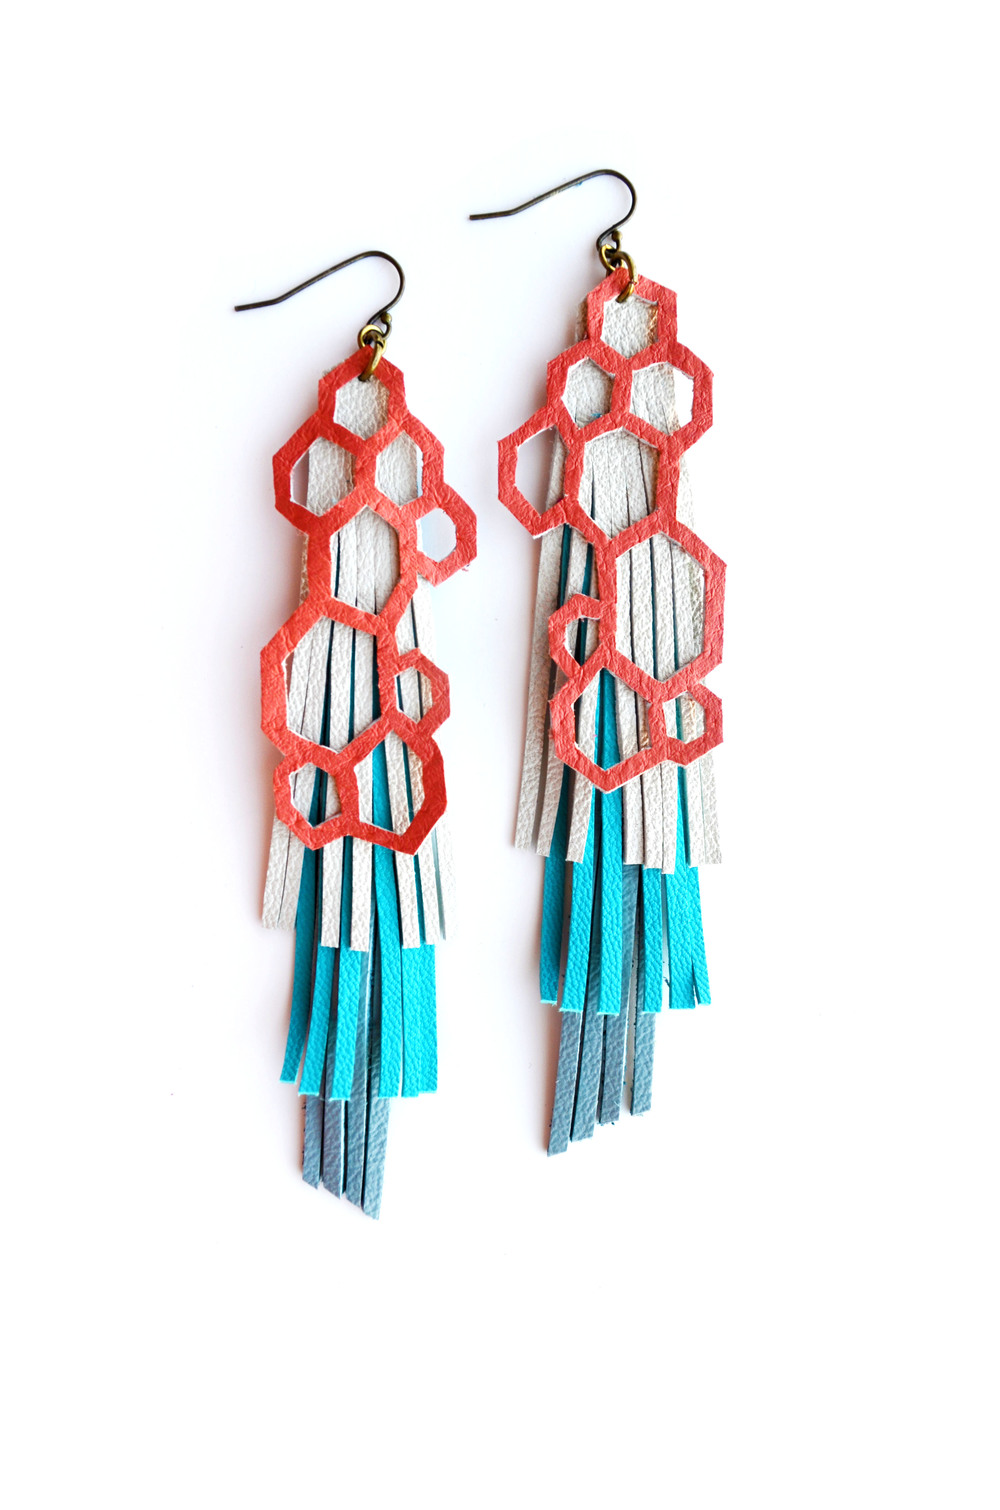 Geometric Leather Earrings Pink Hexagon and Fringe.jpg